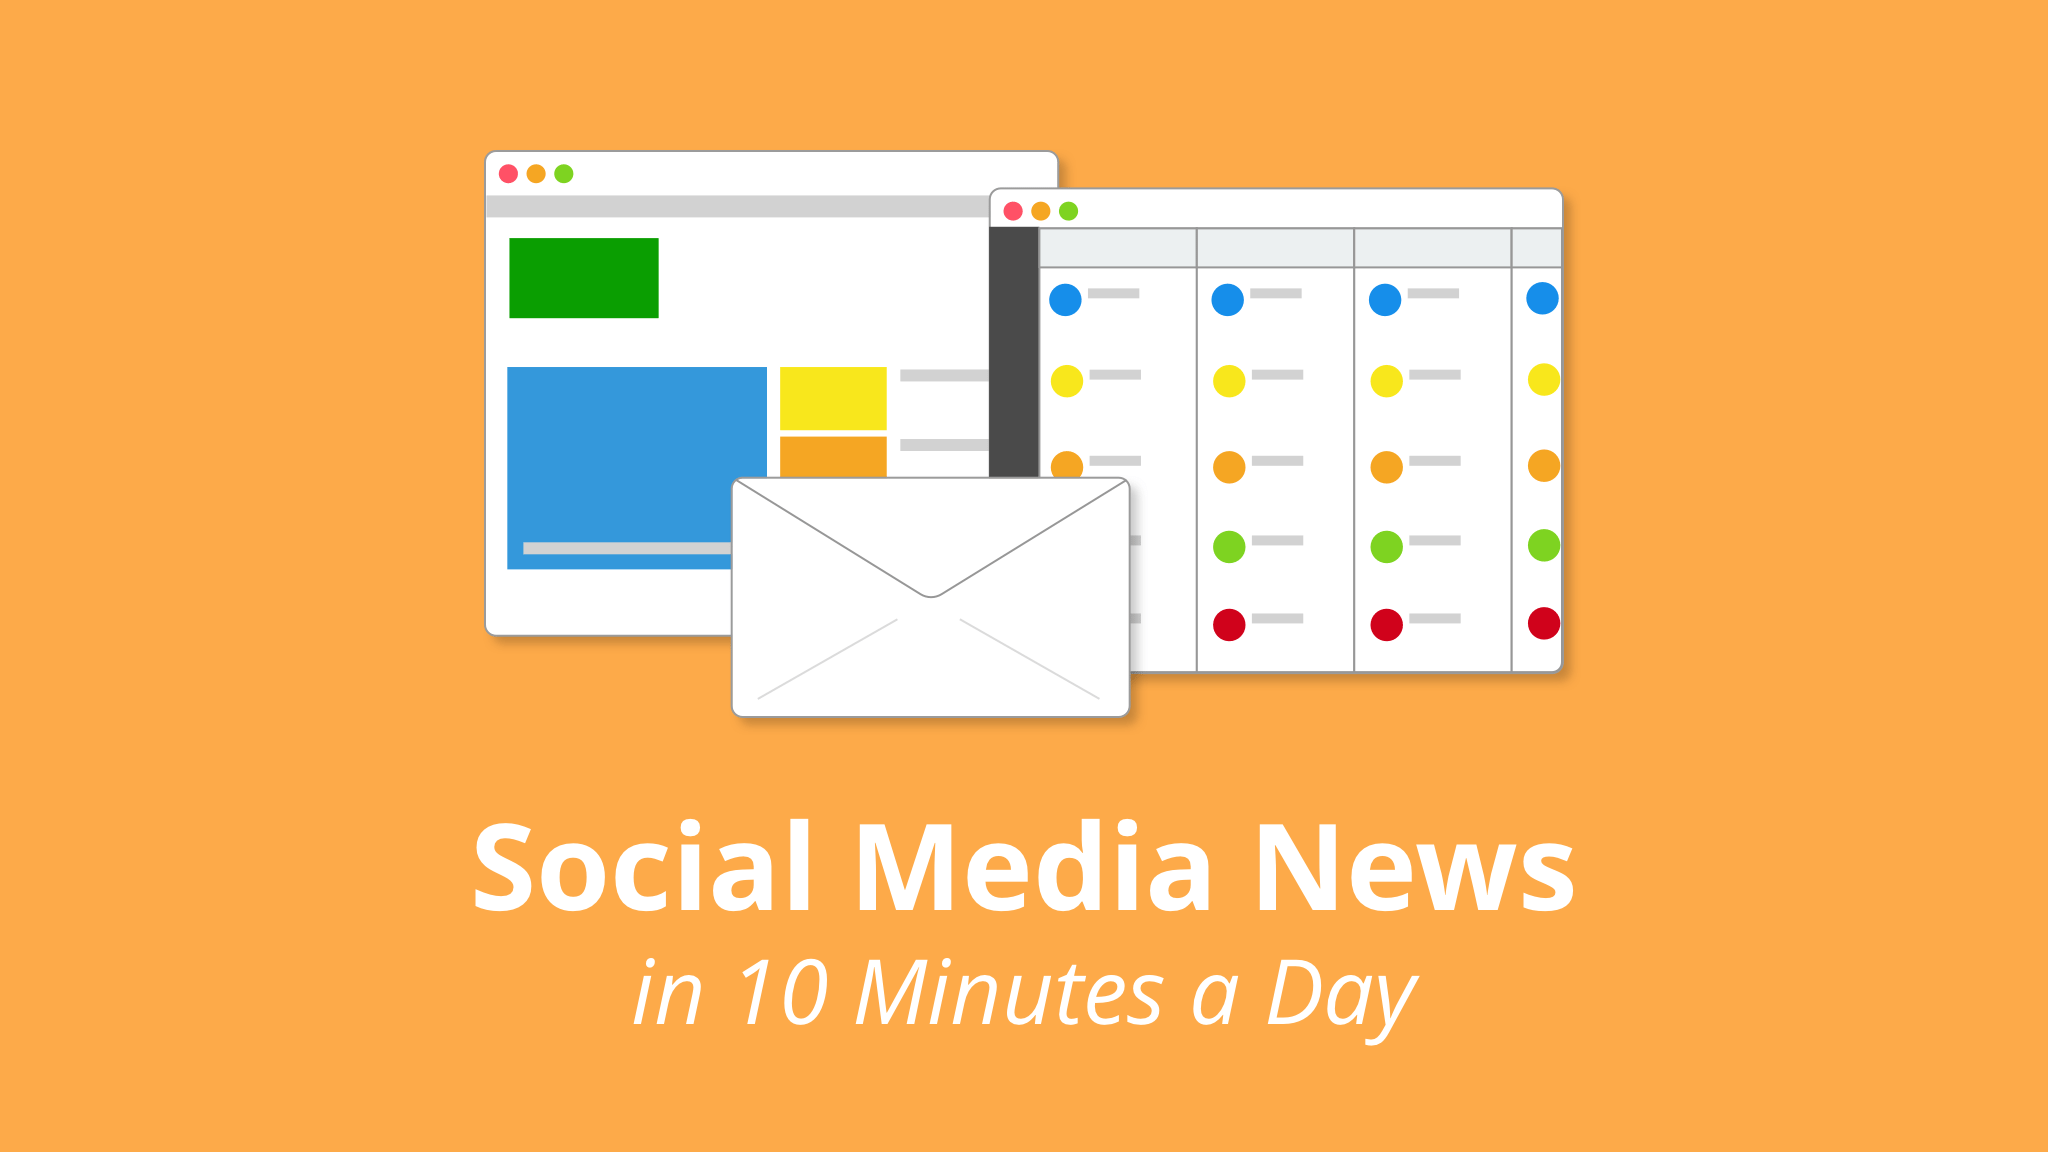 How to Stay Up to Date with Social Media News in 10 Minutes a Day